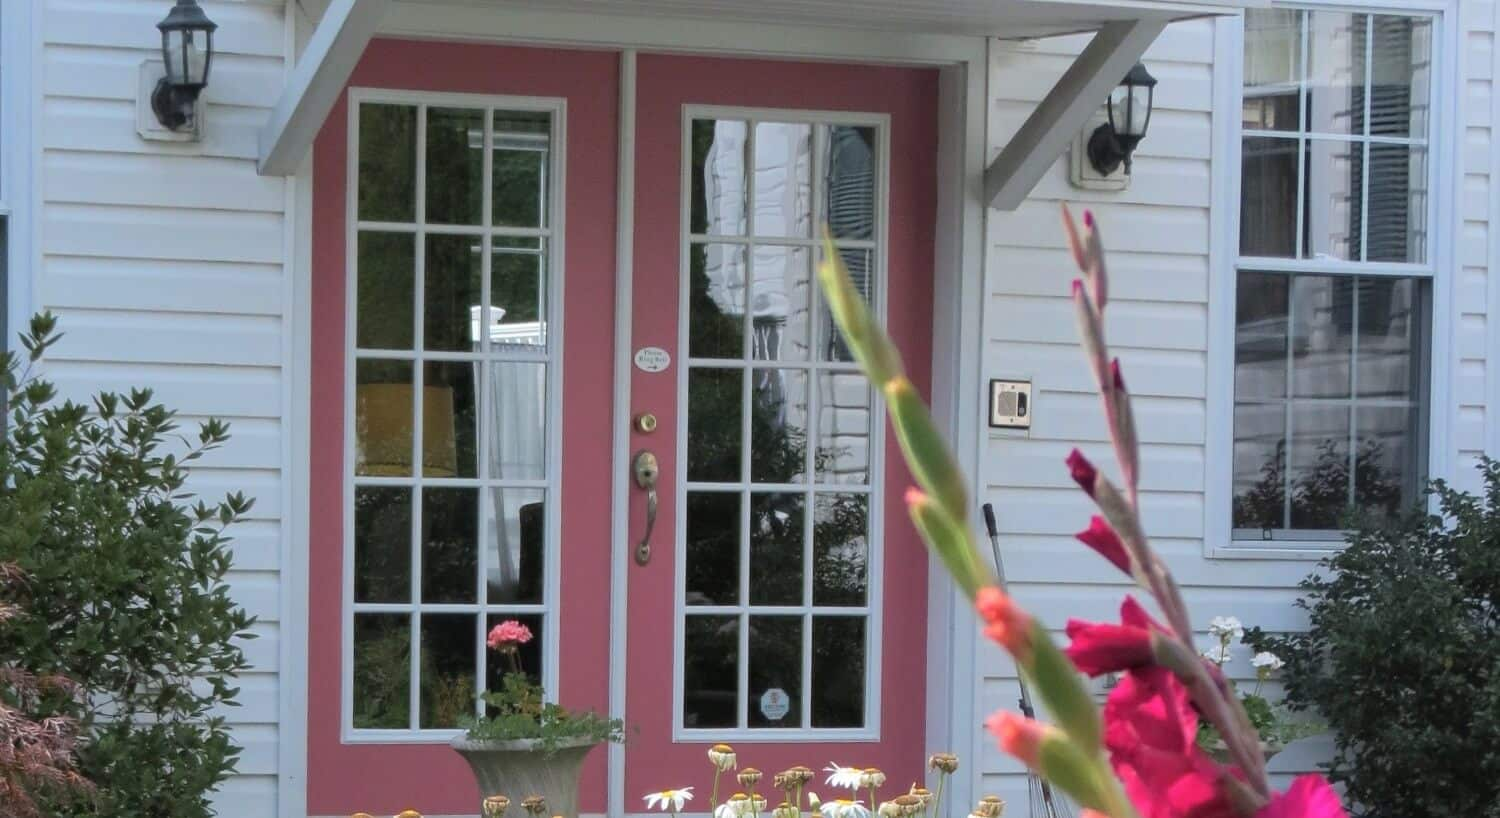 Large pink and white French doors with green bushes outside and pink flowers in foreground